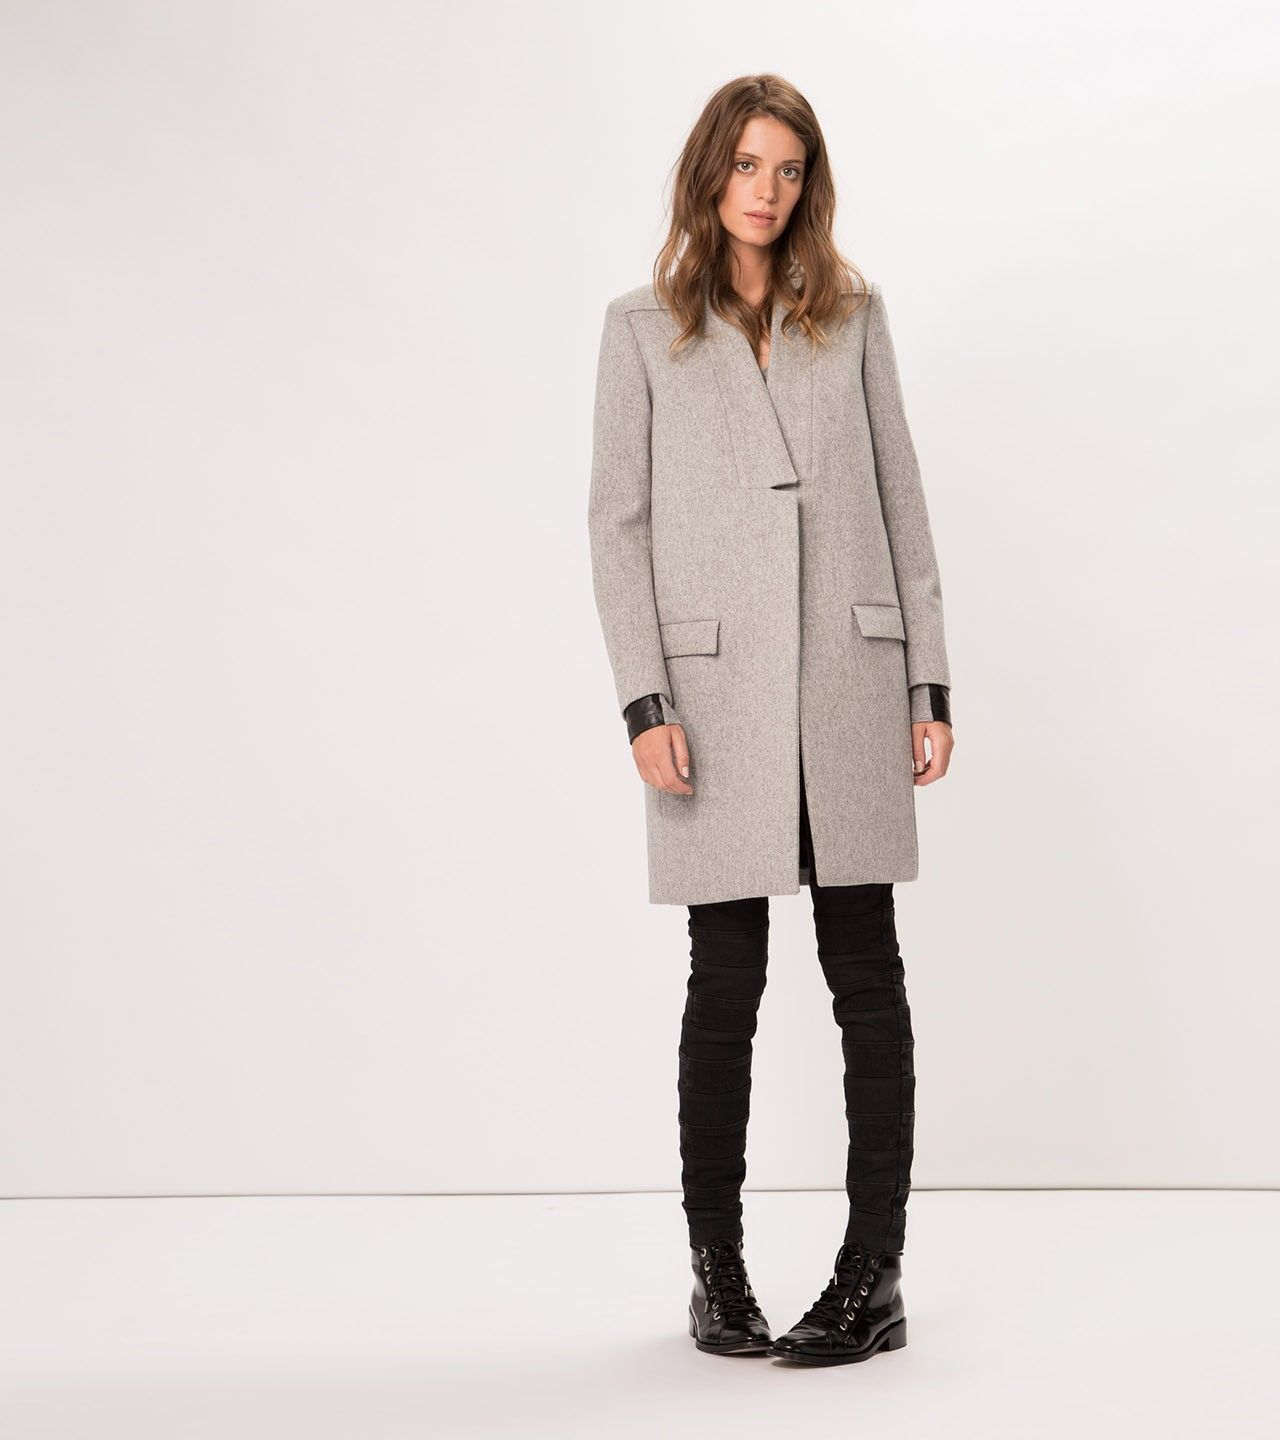 maje KLINTON Straight Fit Wool Coat at Maje US | Stuff to Buy ...